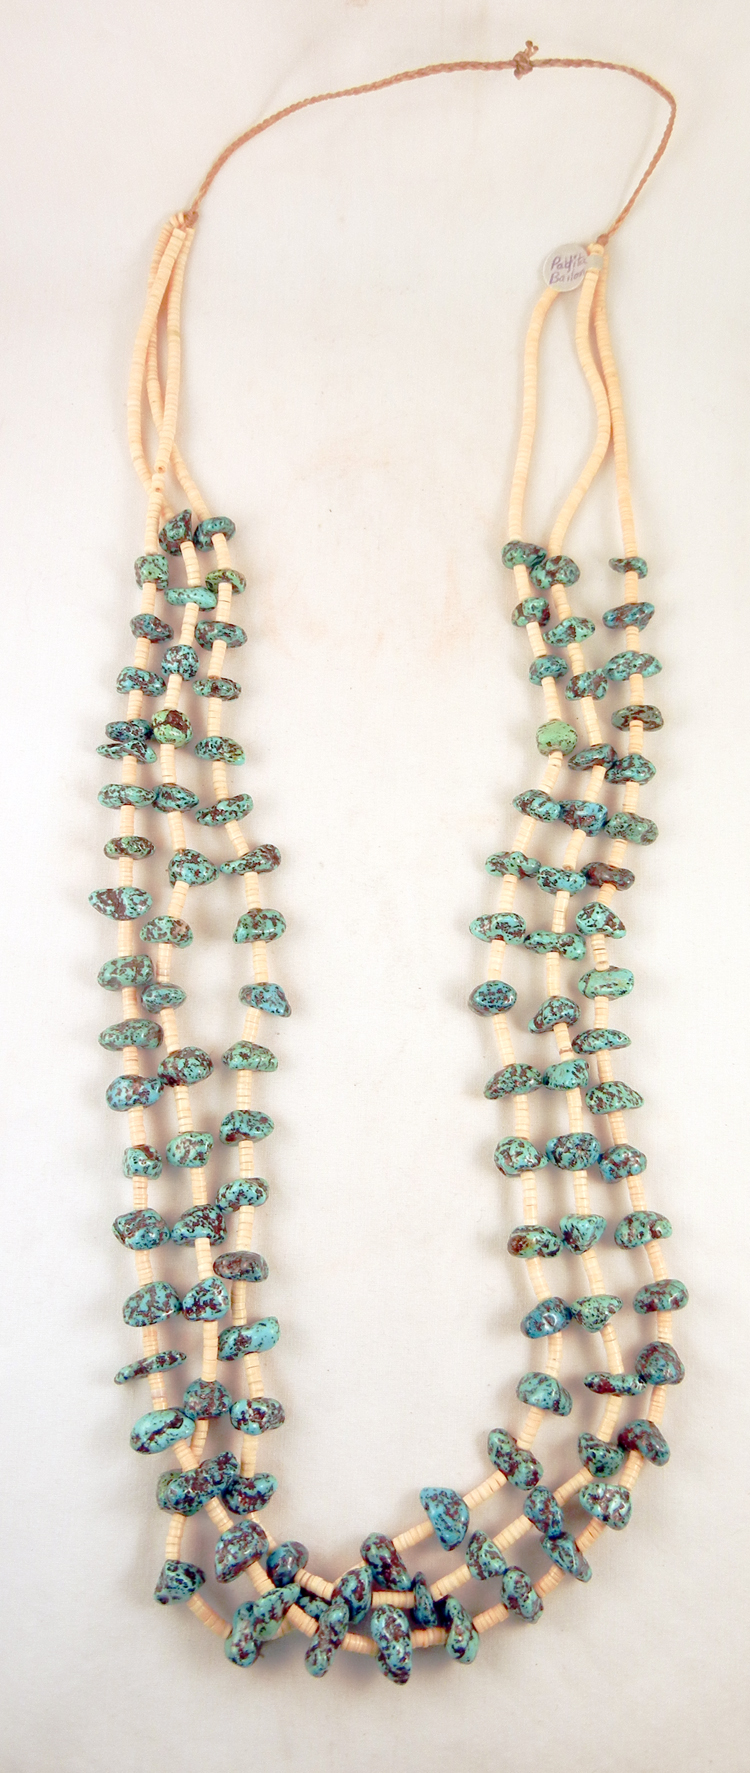 native-american-indian-jewelry-santo-domingo-necklace-turquoise-heishi-pablita-bailon (1)